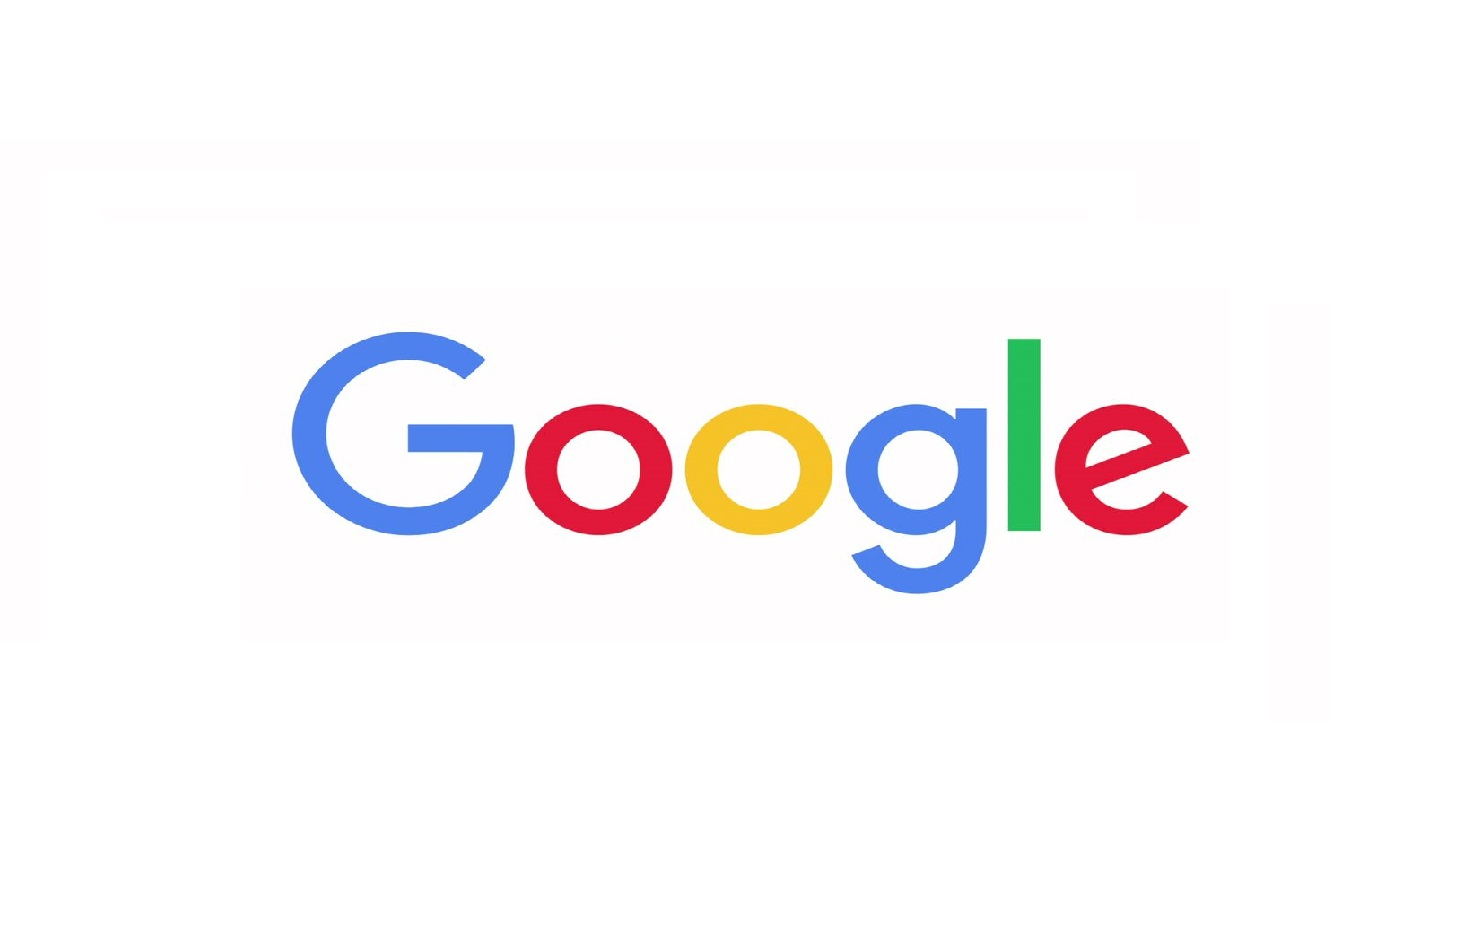 Google text in blue, red, yellow, and green